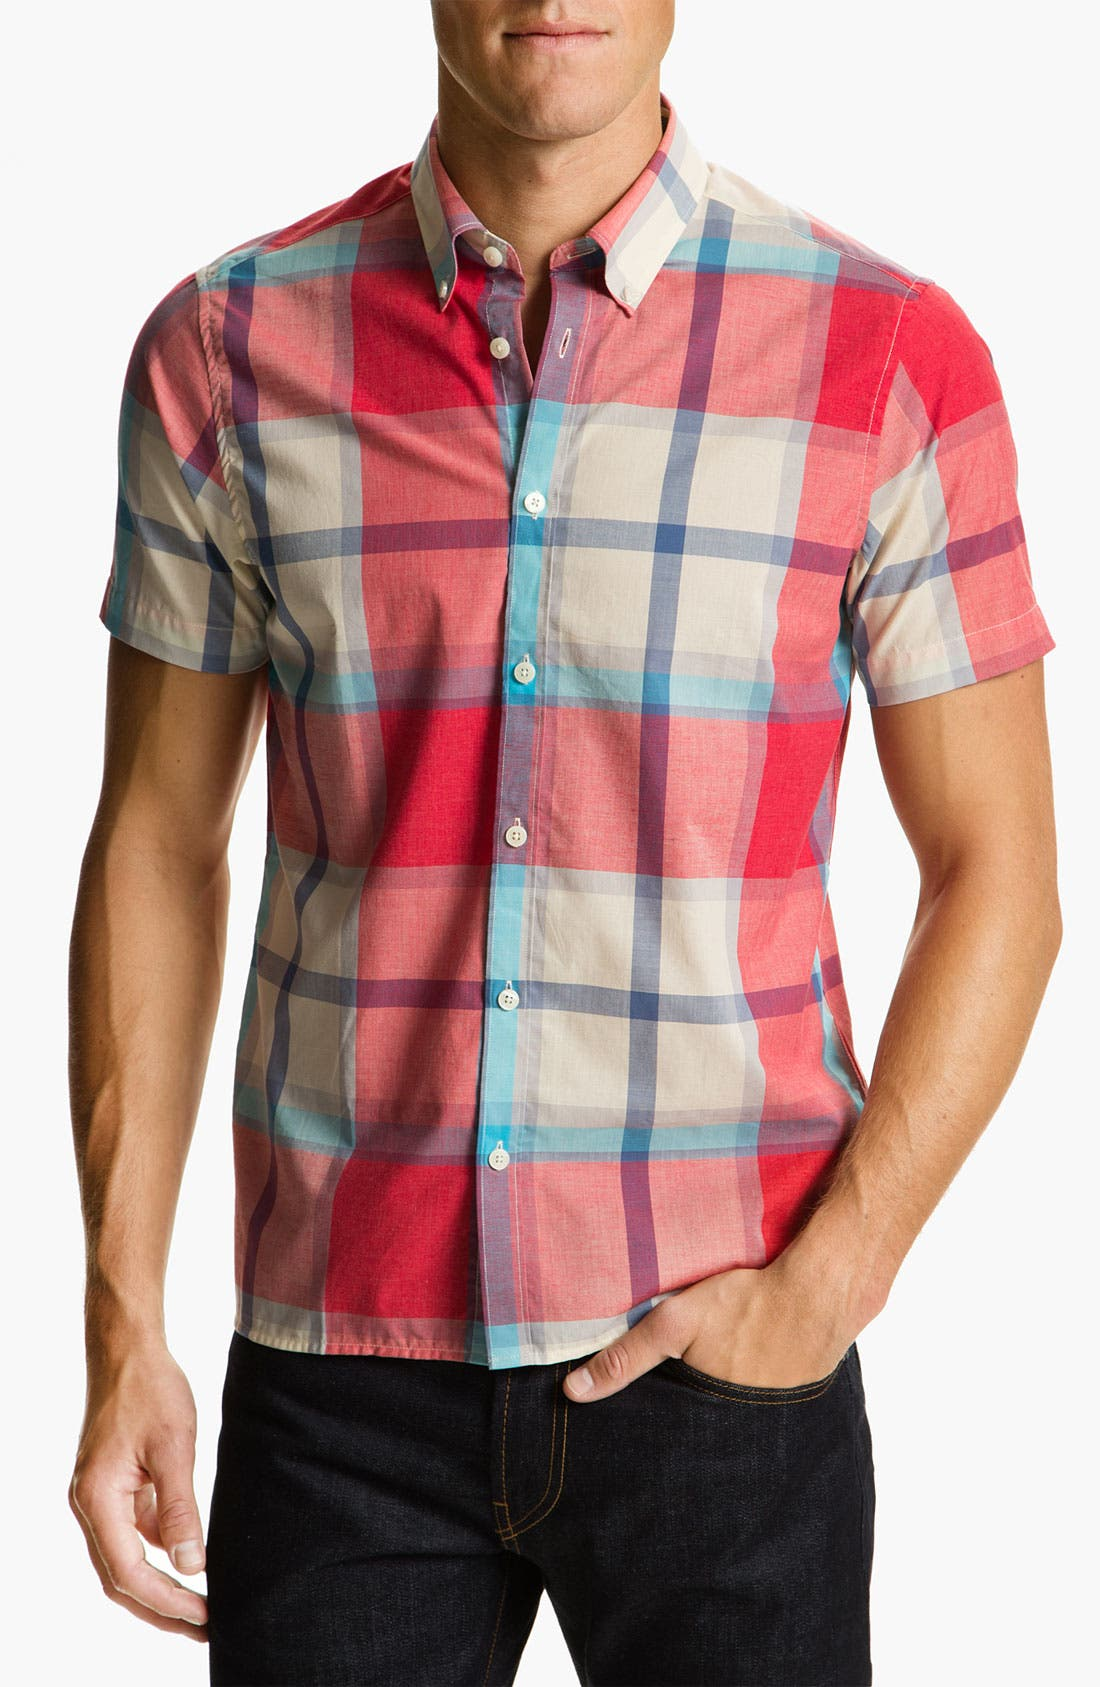 Alternate Image 1 Selected - Ben Sherman Short Sleeve Woven Shirt